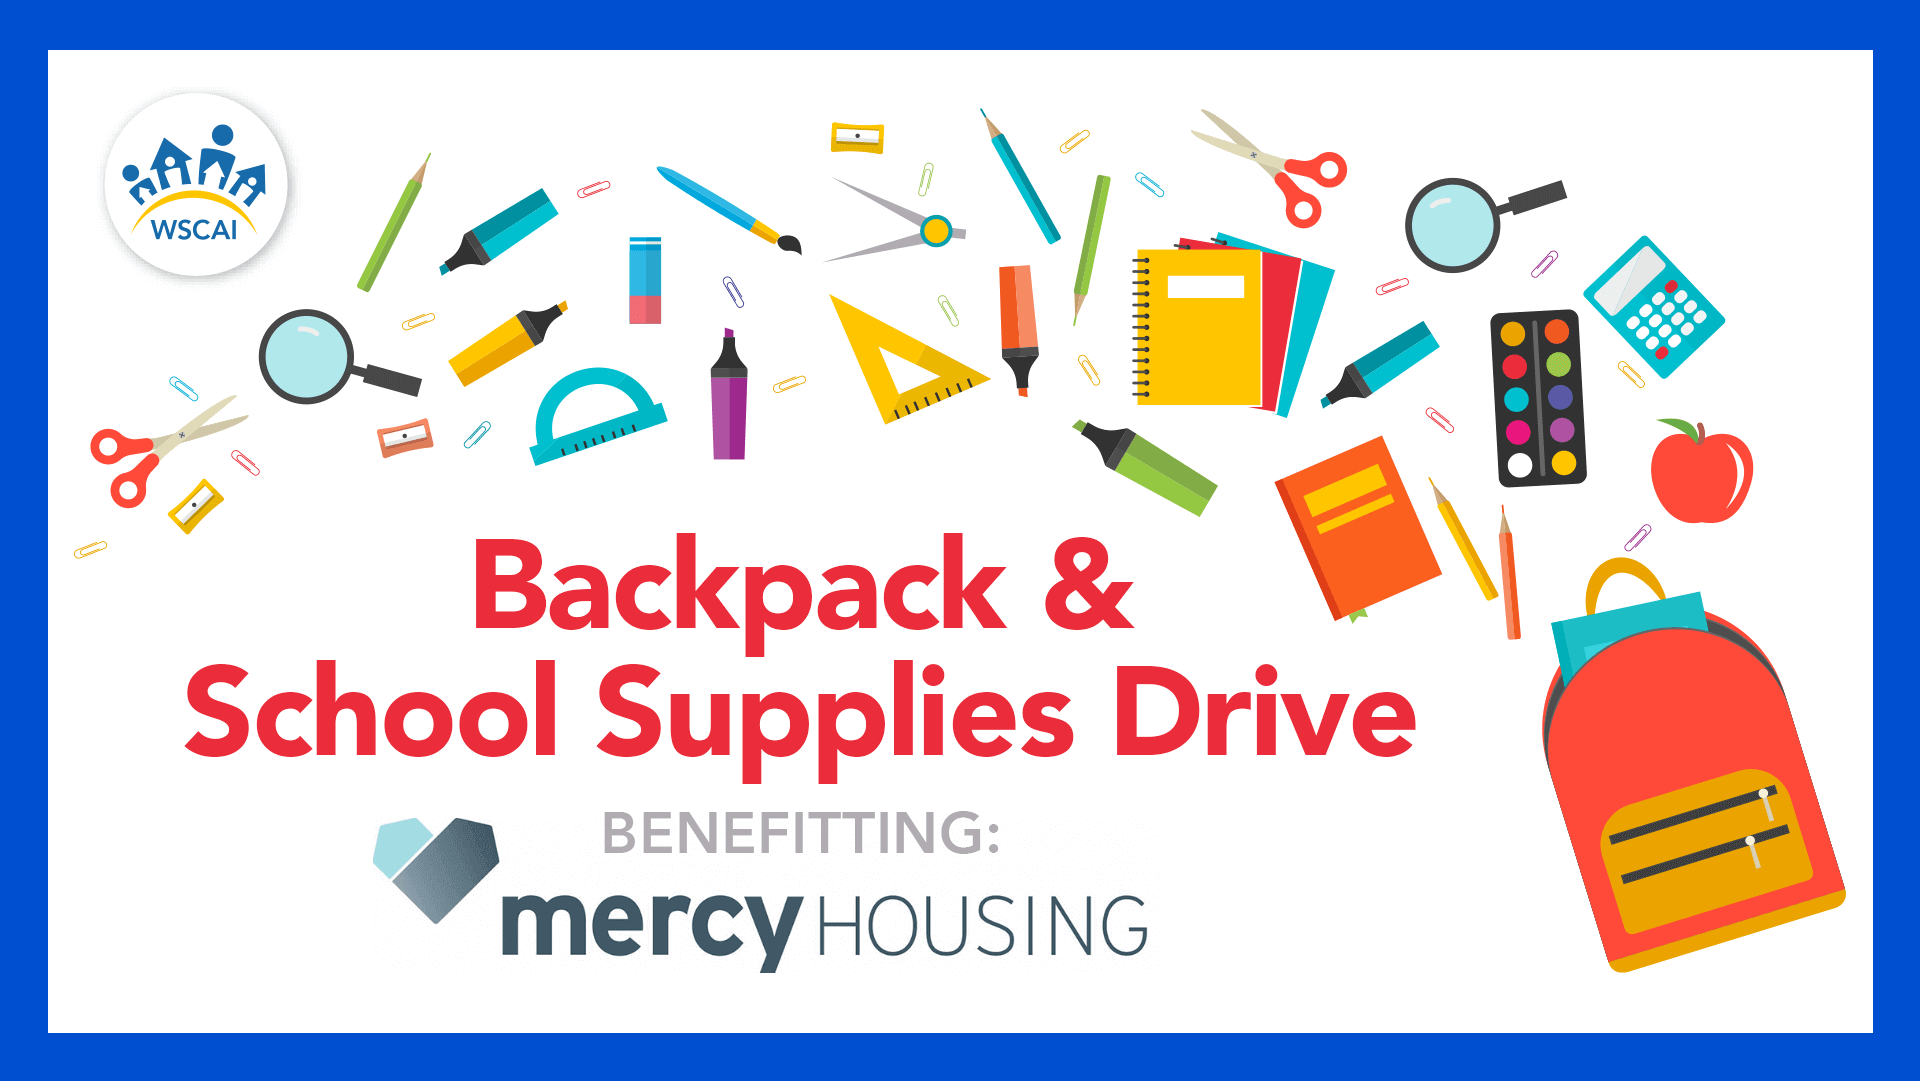 Backpack & School Supplies Drive - Benefitting Mercy Housing NW - Desktop Image